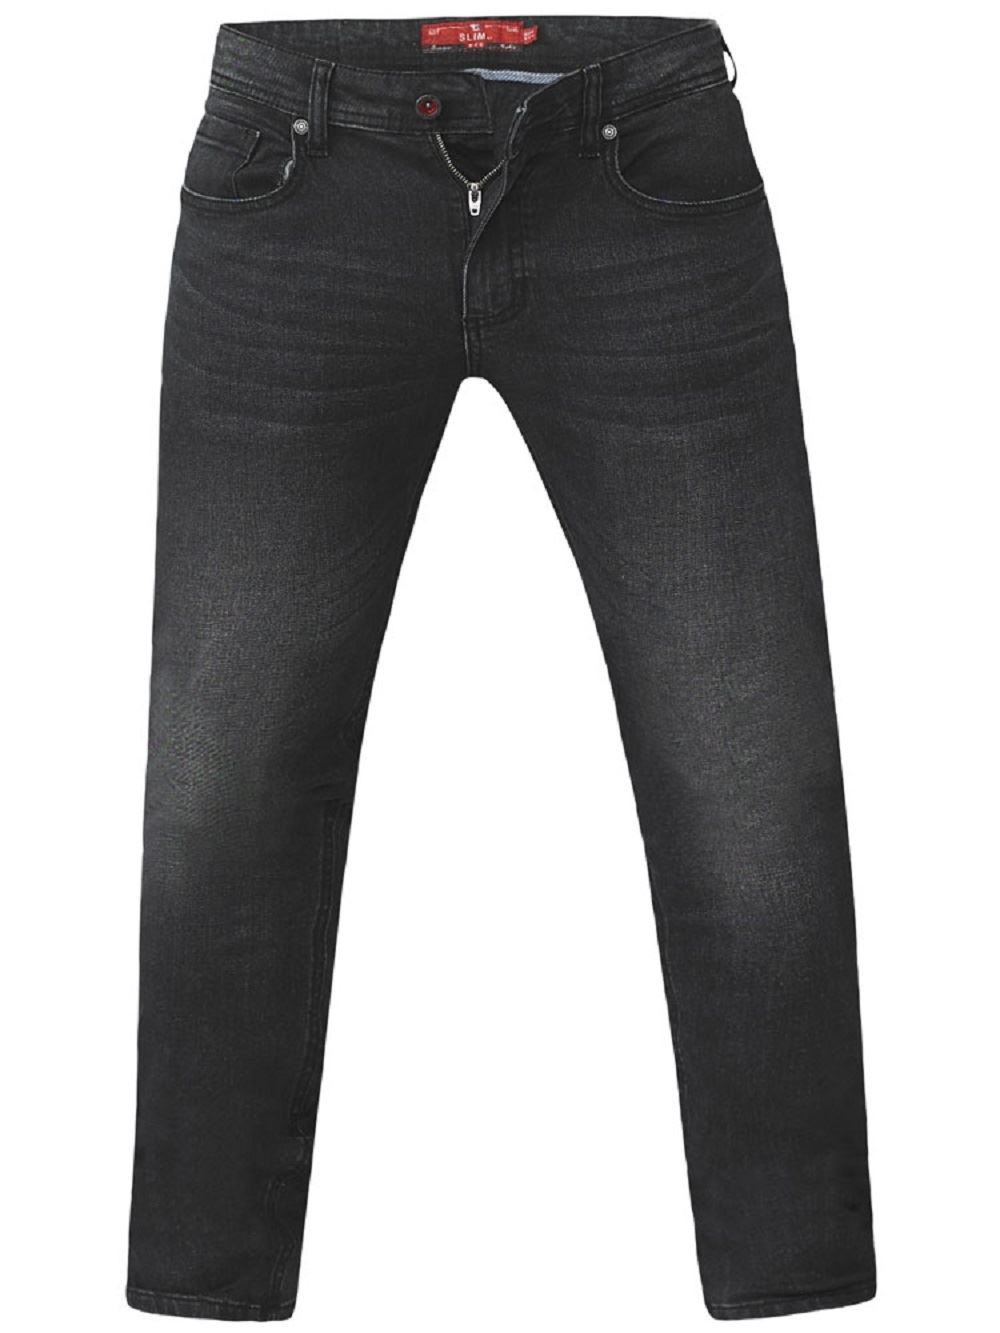 D555-Mens-Big-Size-Tapered-Fit-Stretch-Jeans-In-Grey-Stonewash-Benson thumbnail 7